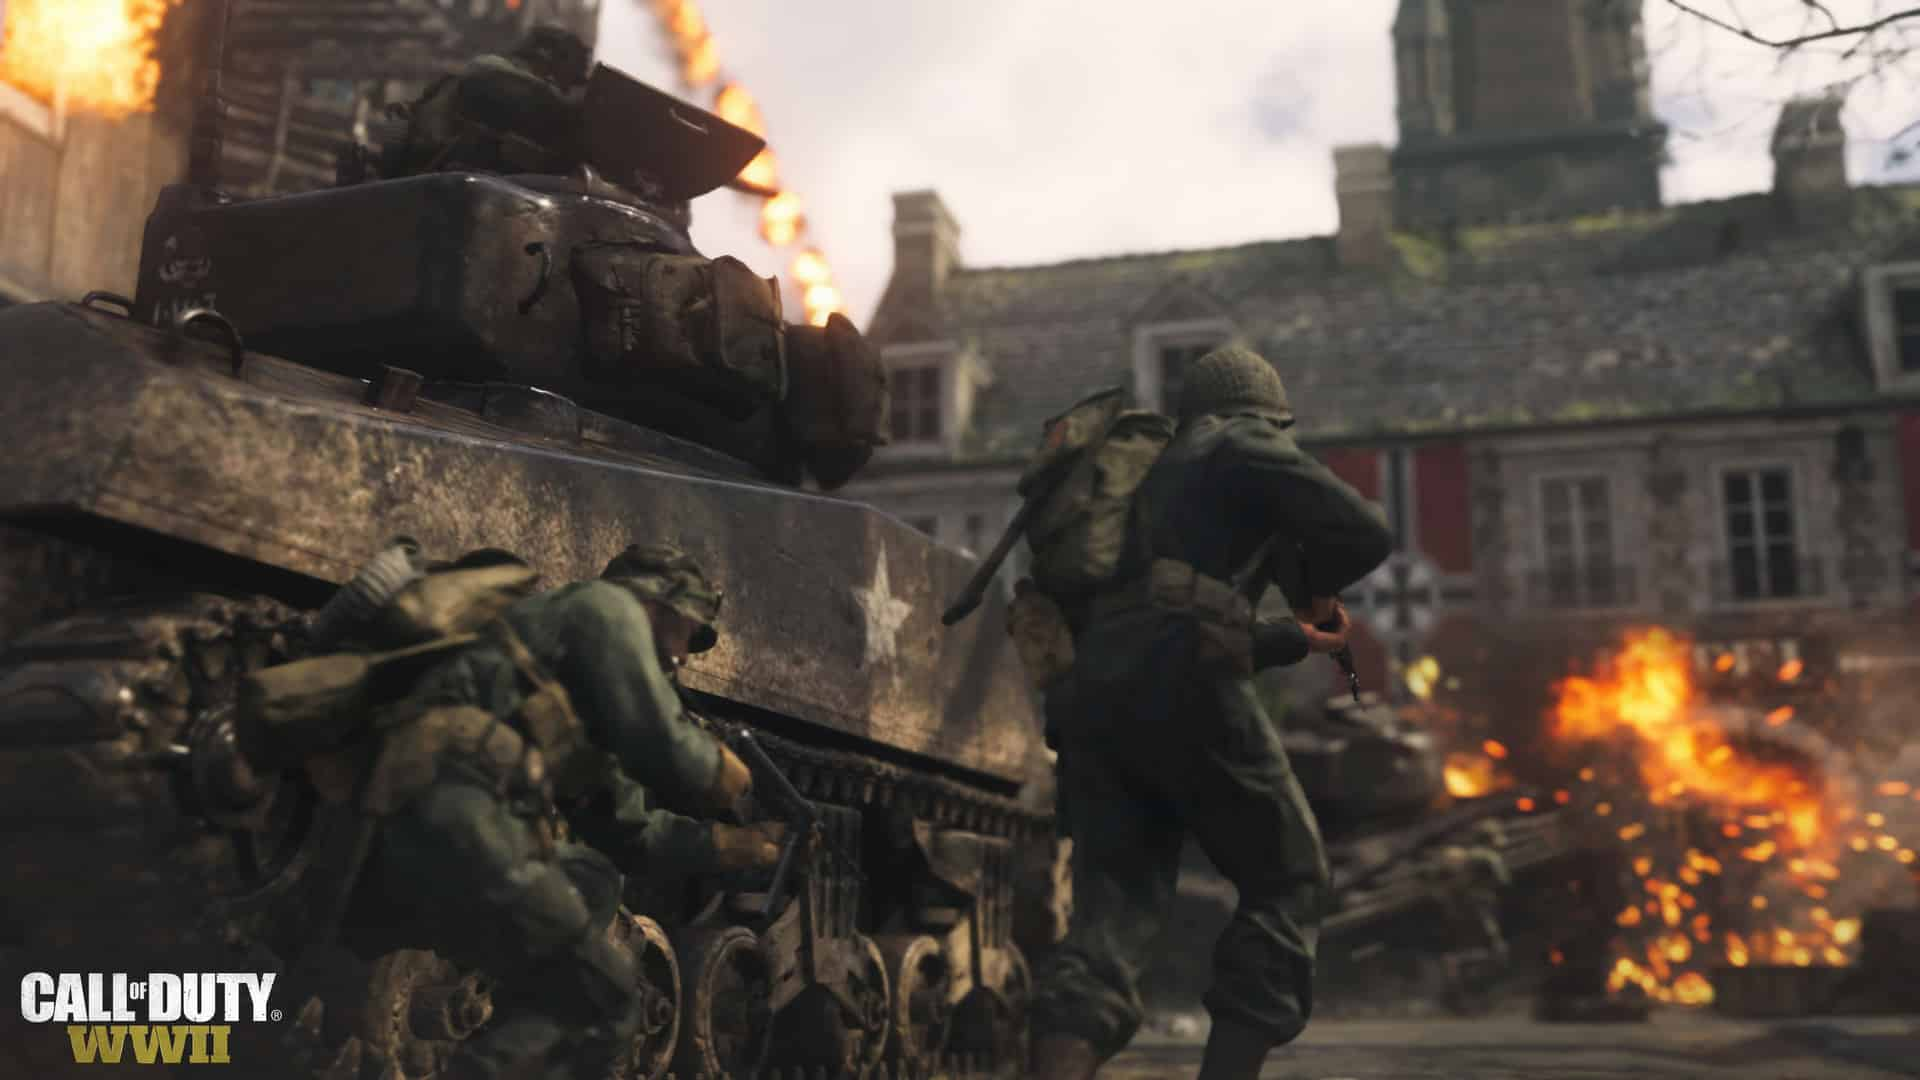 Call of Duty: WW2 Sales are Much Better Than Infinite Warfare